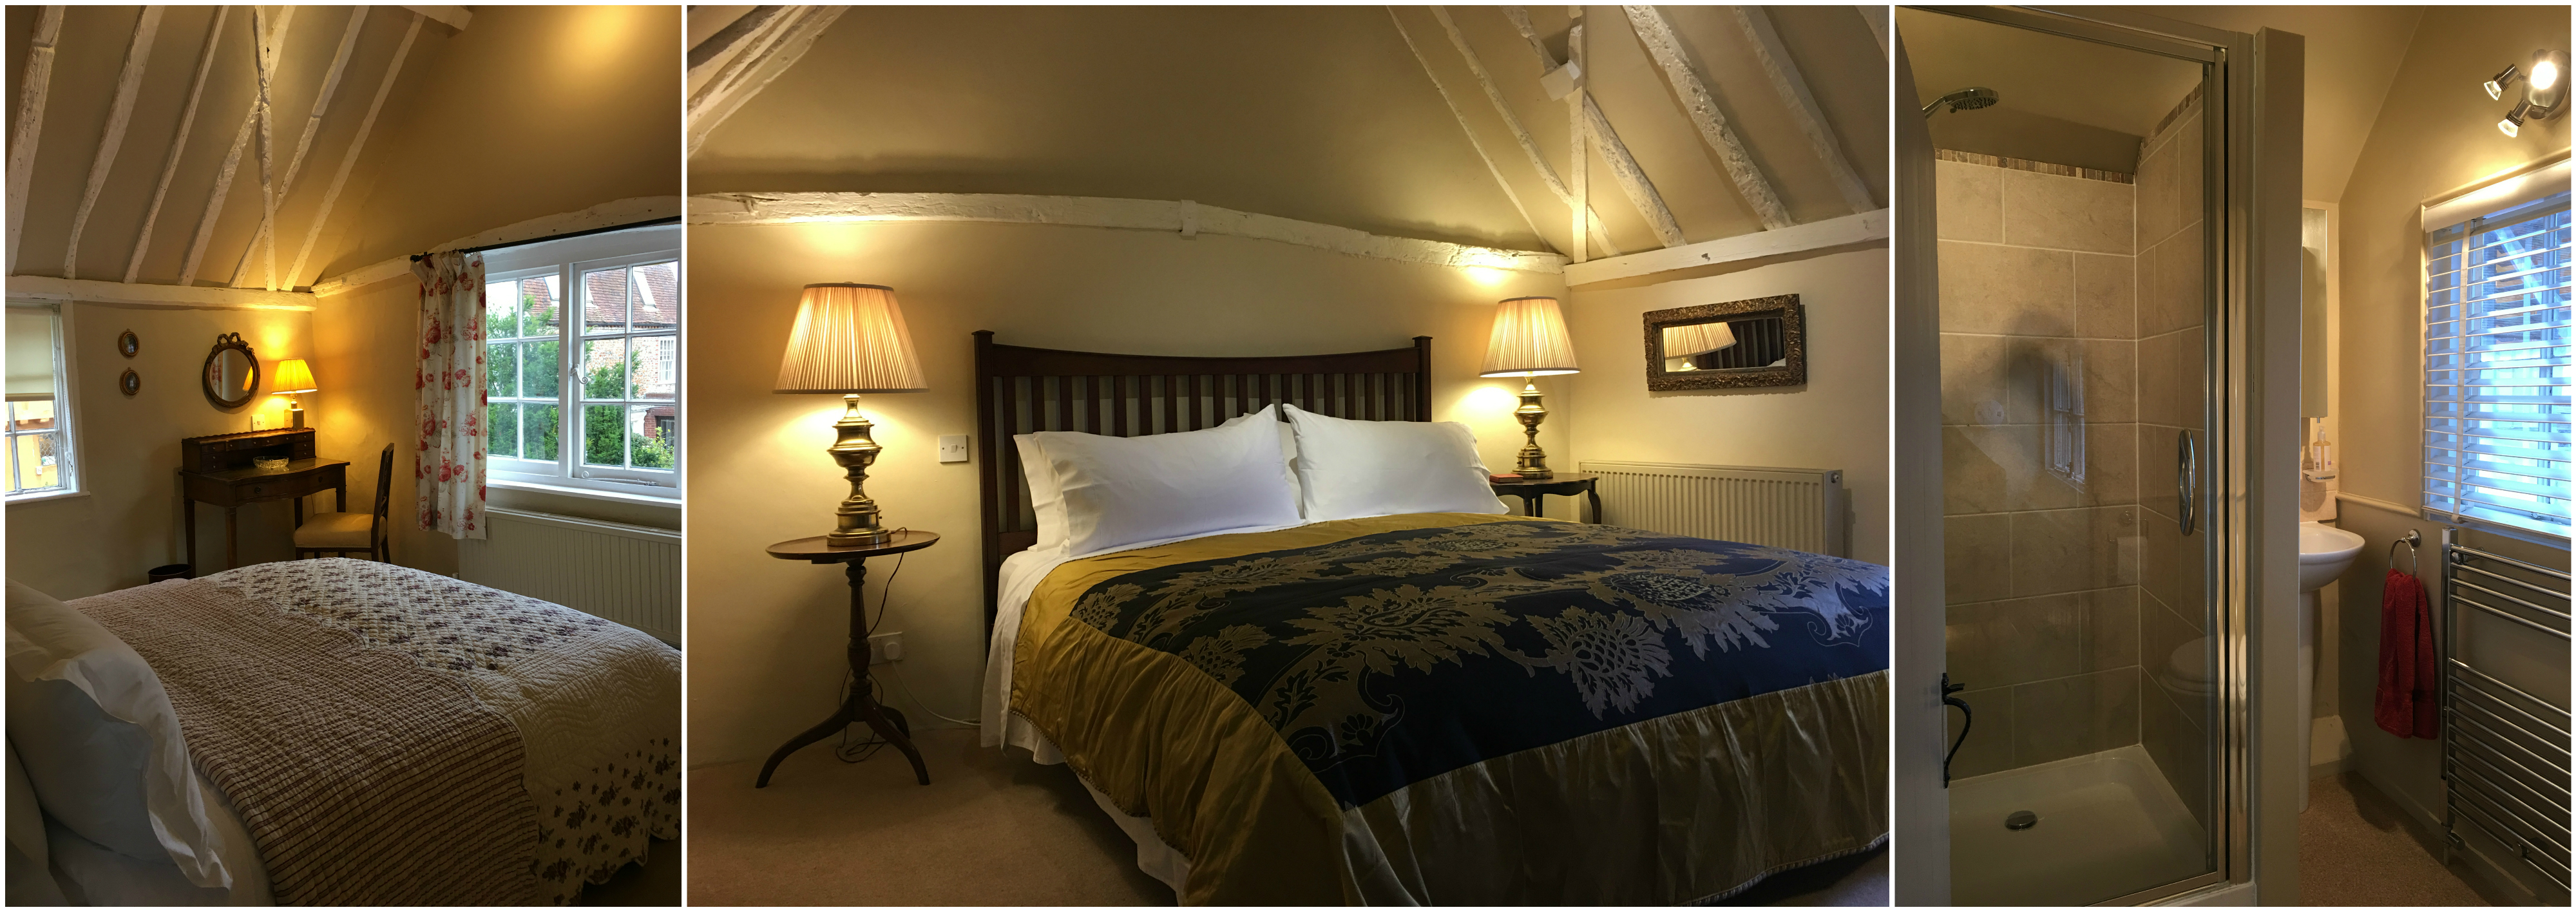 Accommodation at 2 Bed Suffolk Holiday Cottage Rental